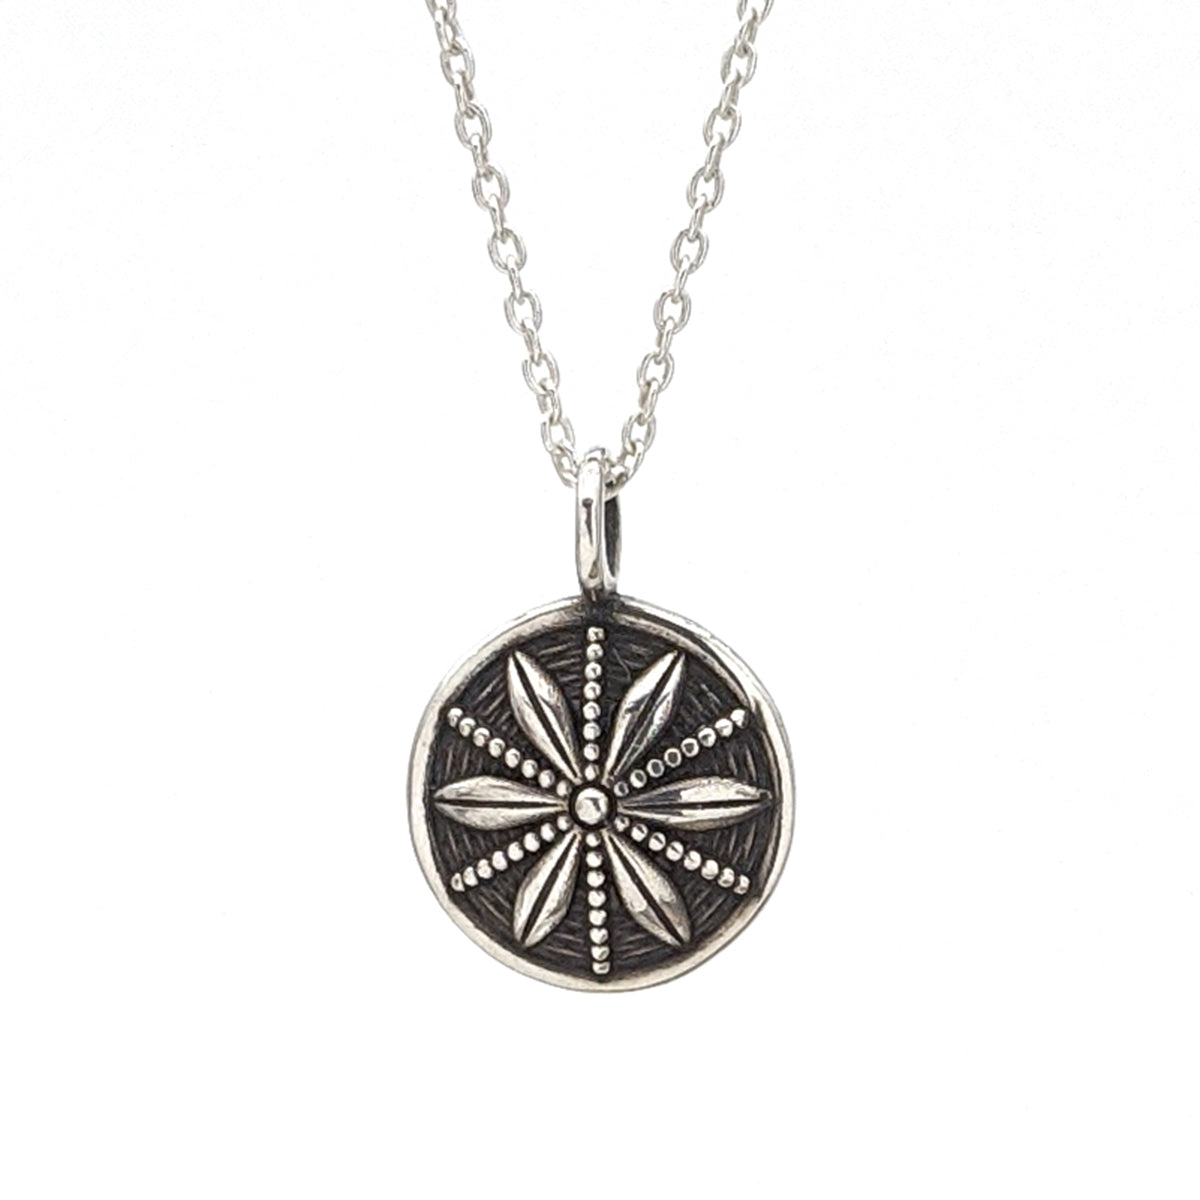 Tiny sterling silver circle pendant with a star anise design radiating around the center.